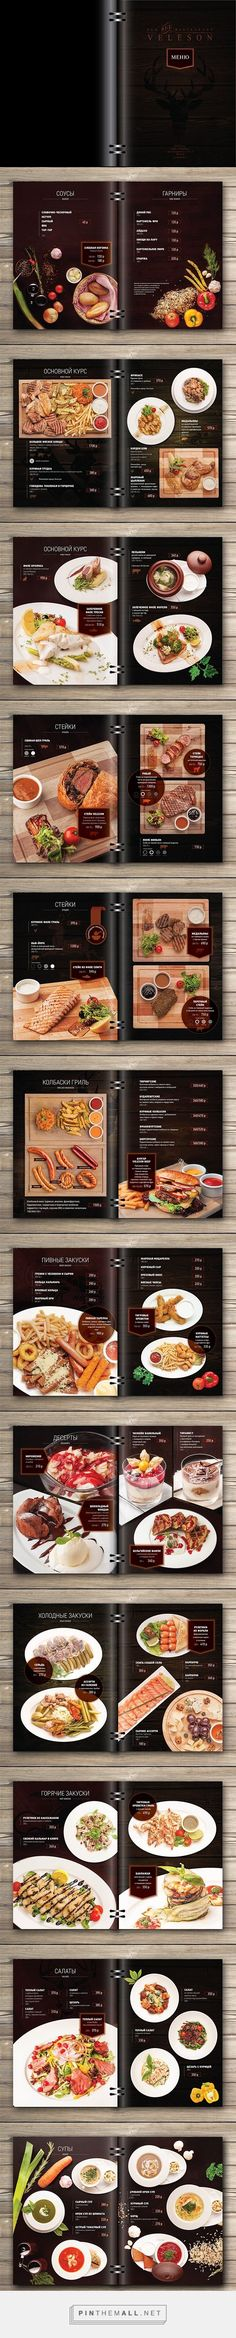 Menu for restaurant by Ann Reus